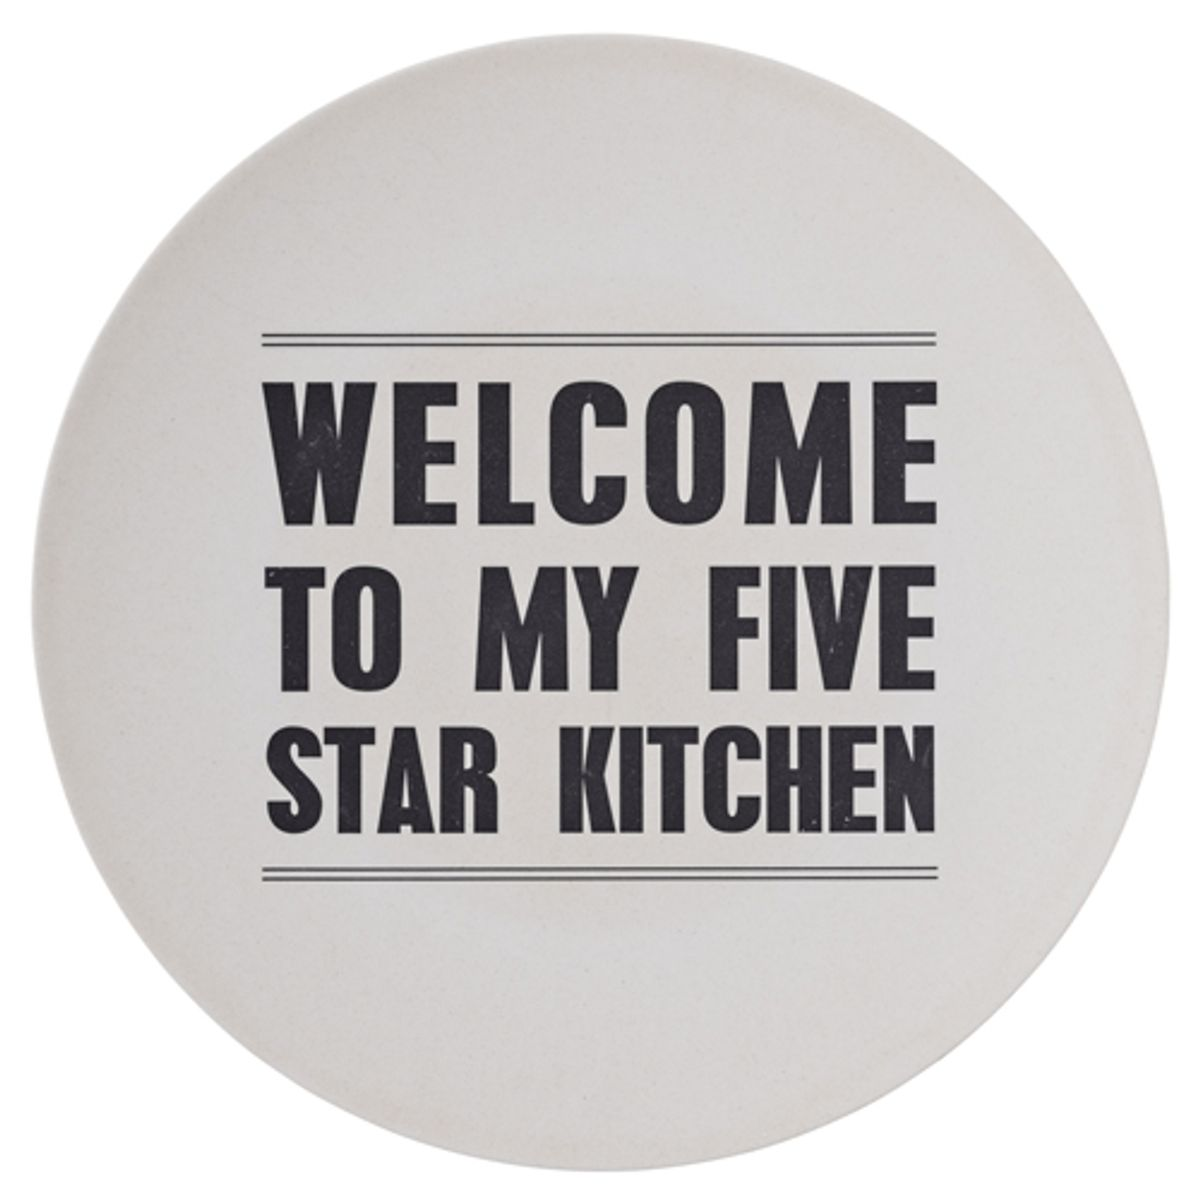 Plat rond en bambou Welcome To My Five Star Kitchen Bloomingville